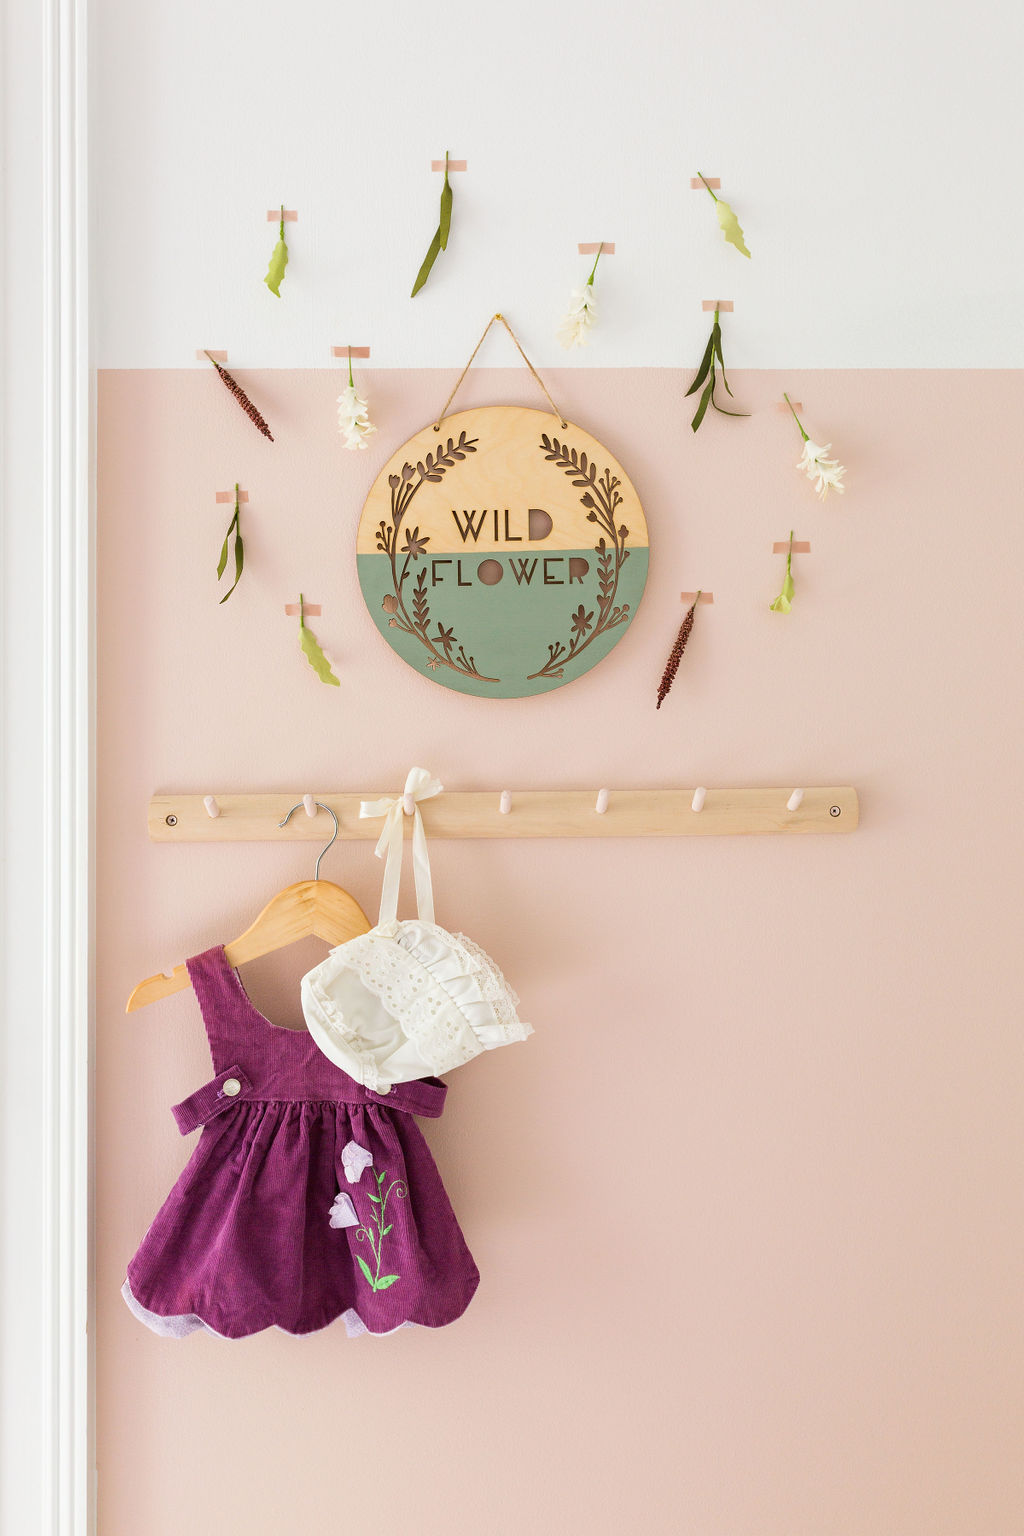 wildflower wall hanging floral nursery